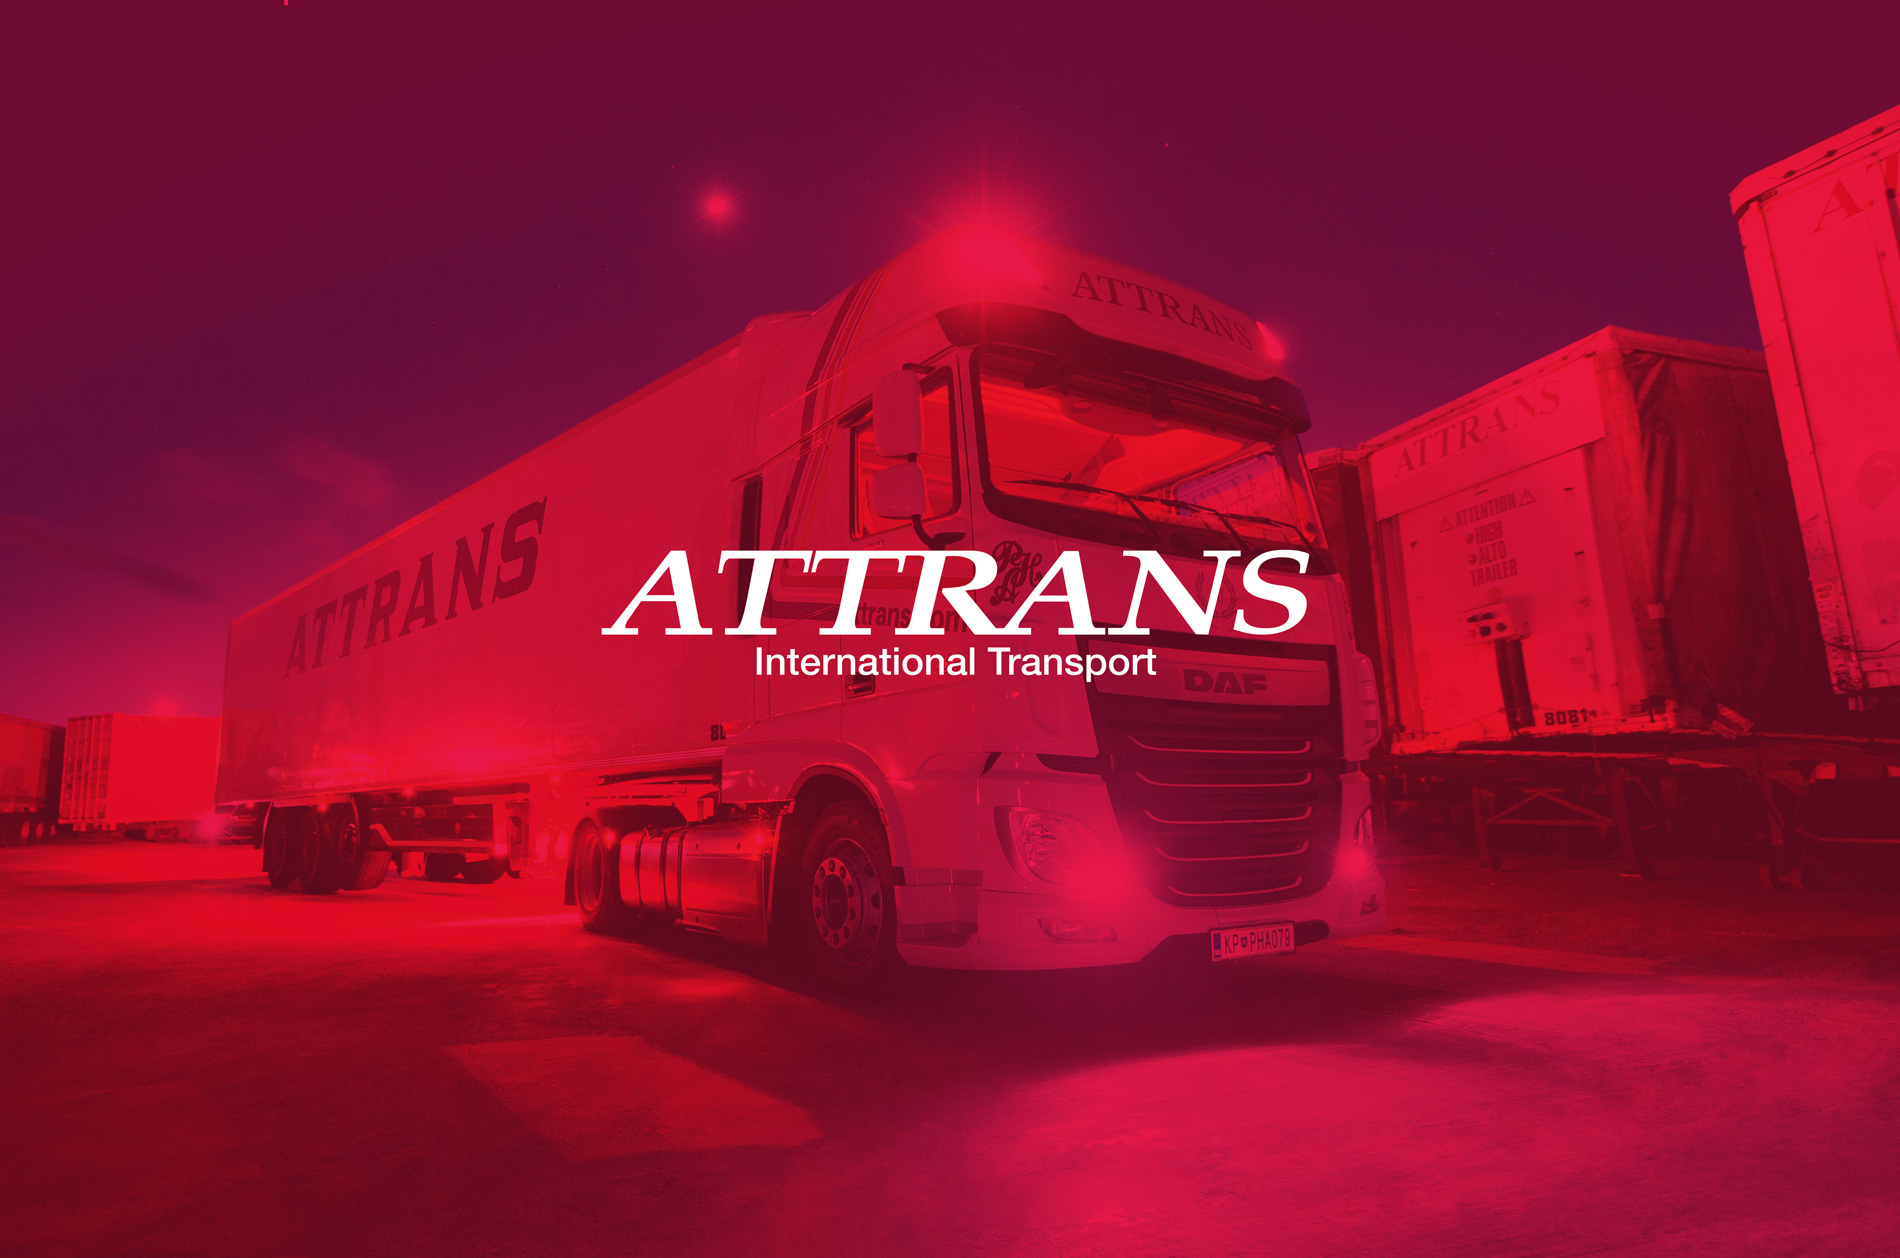 Attrans Internationl Transport